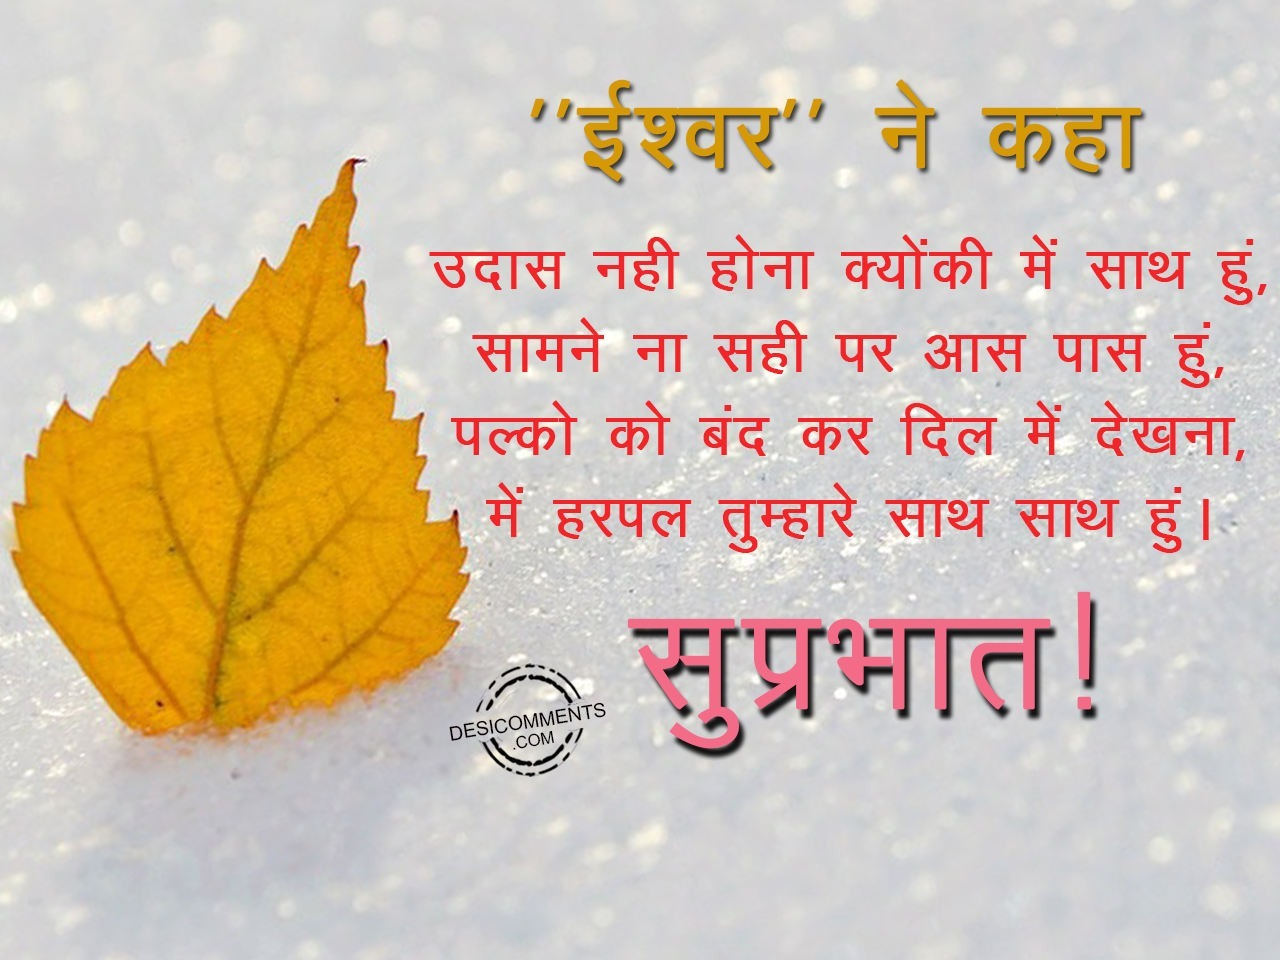 Good morning pic with hindi message